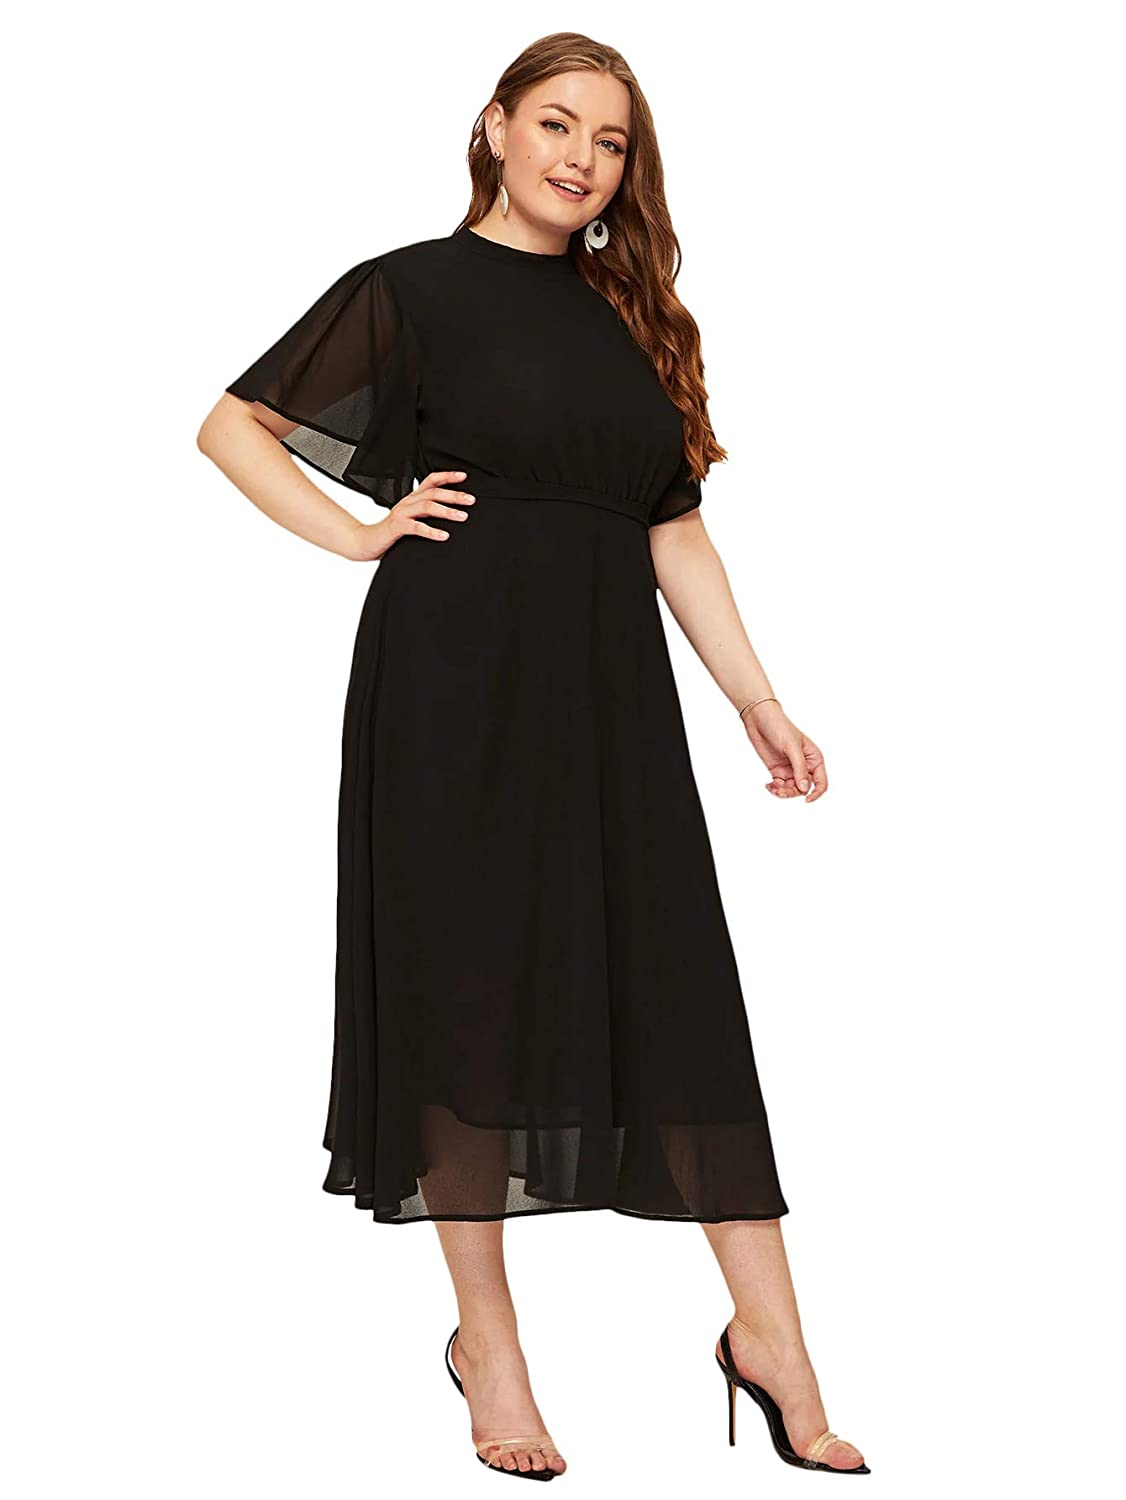 1930s Day Dresses, Afternoon Dresses History Milumia Womens Plus Size Formal Chiffon Cocktail Flounce Sleeve Maxi Party Dress $36.99 AT vintagedancer.com